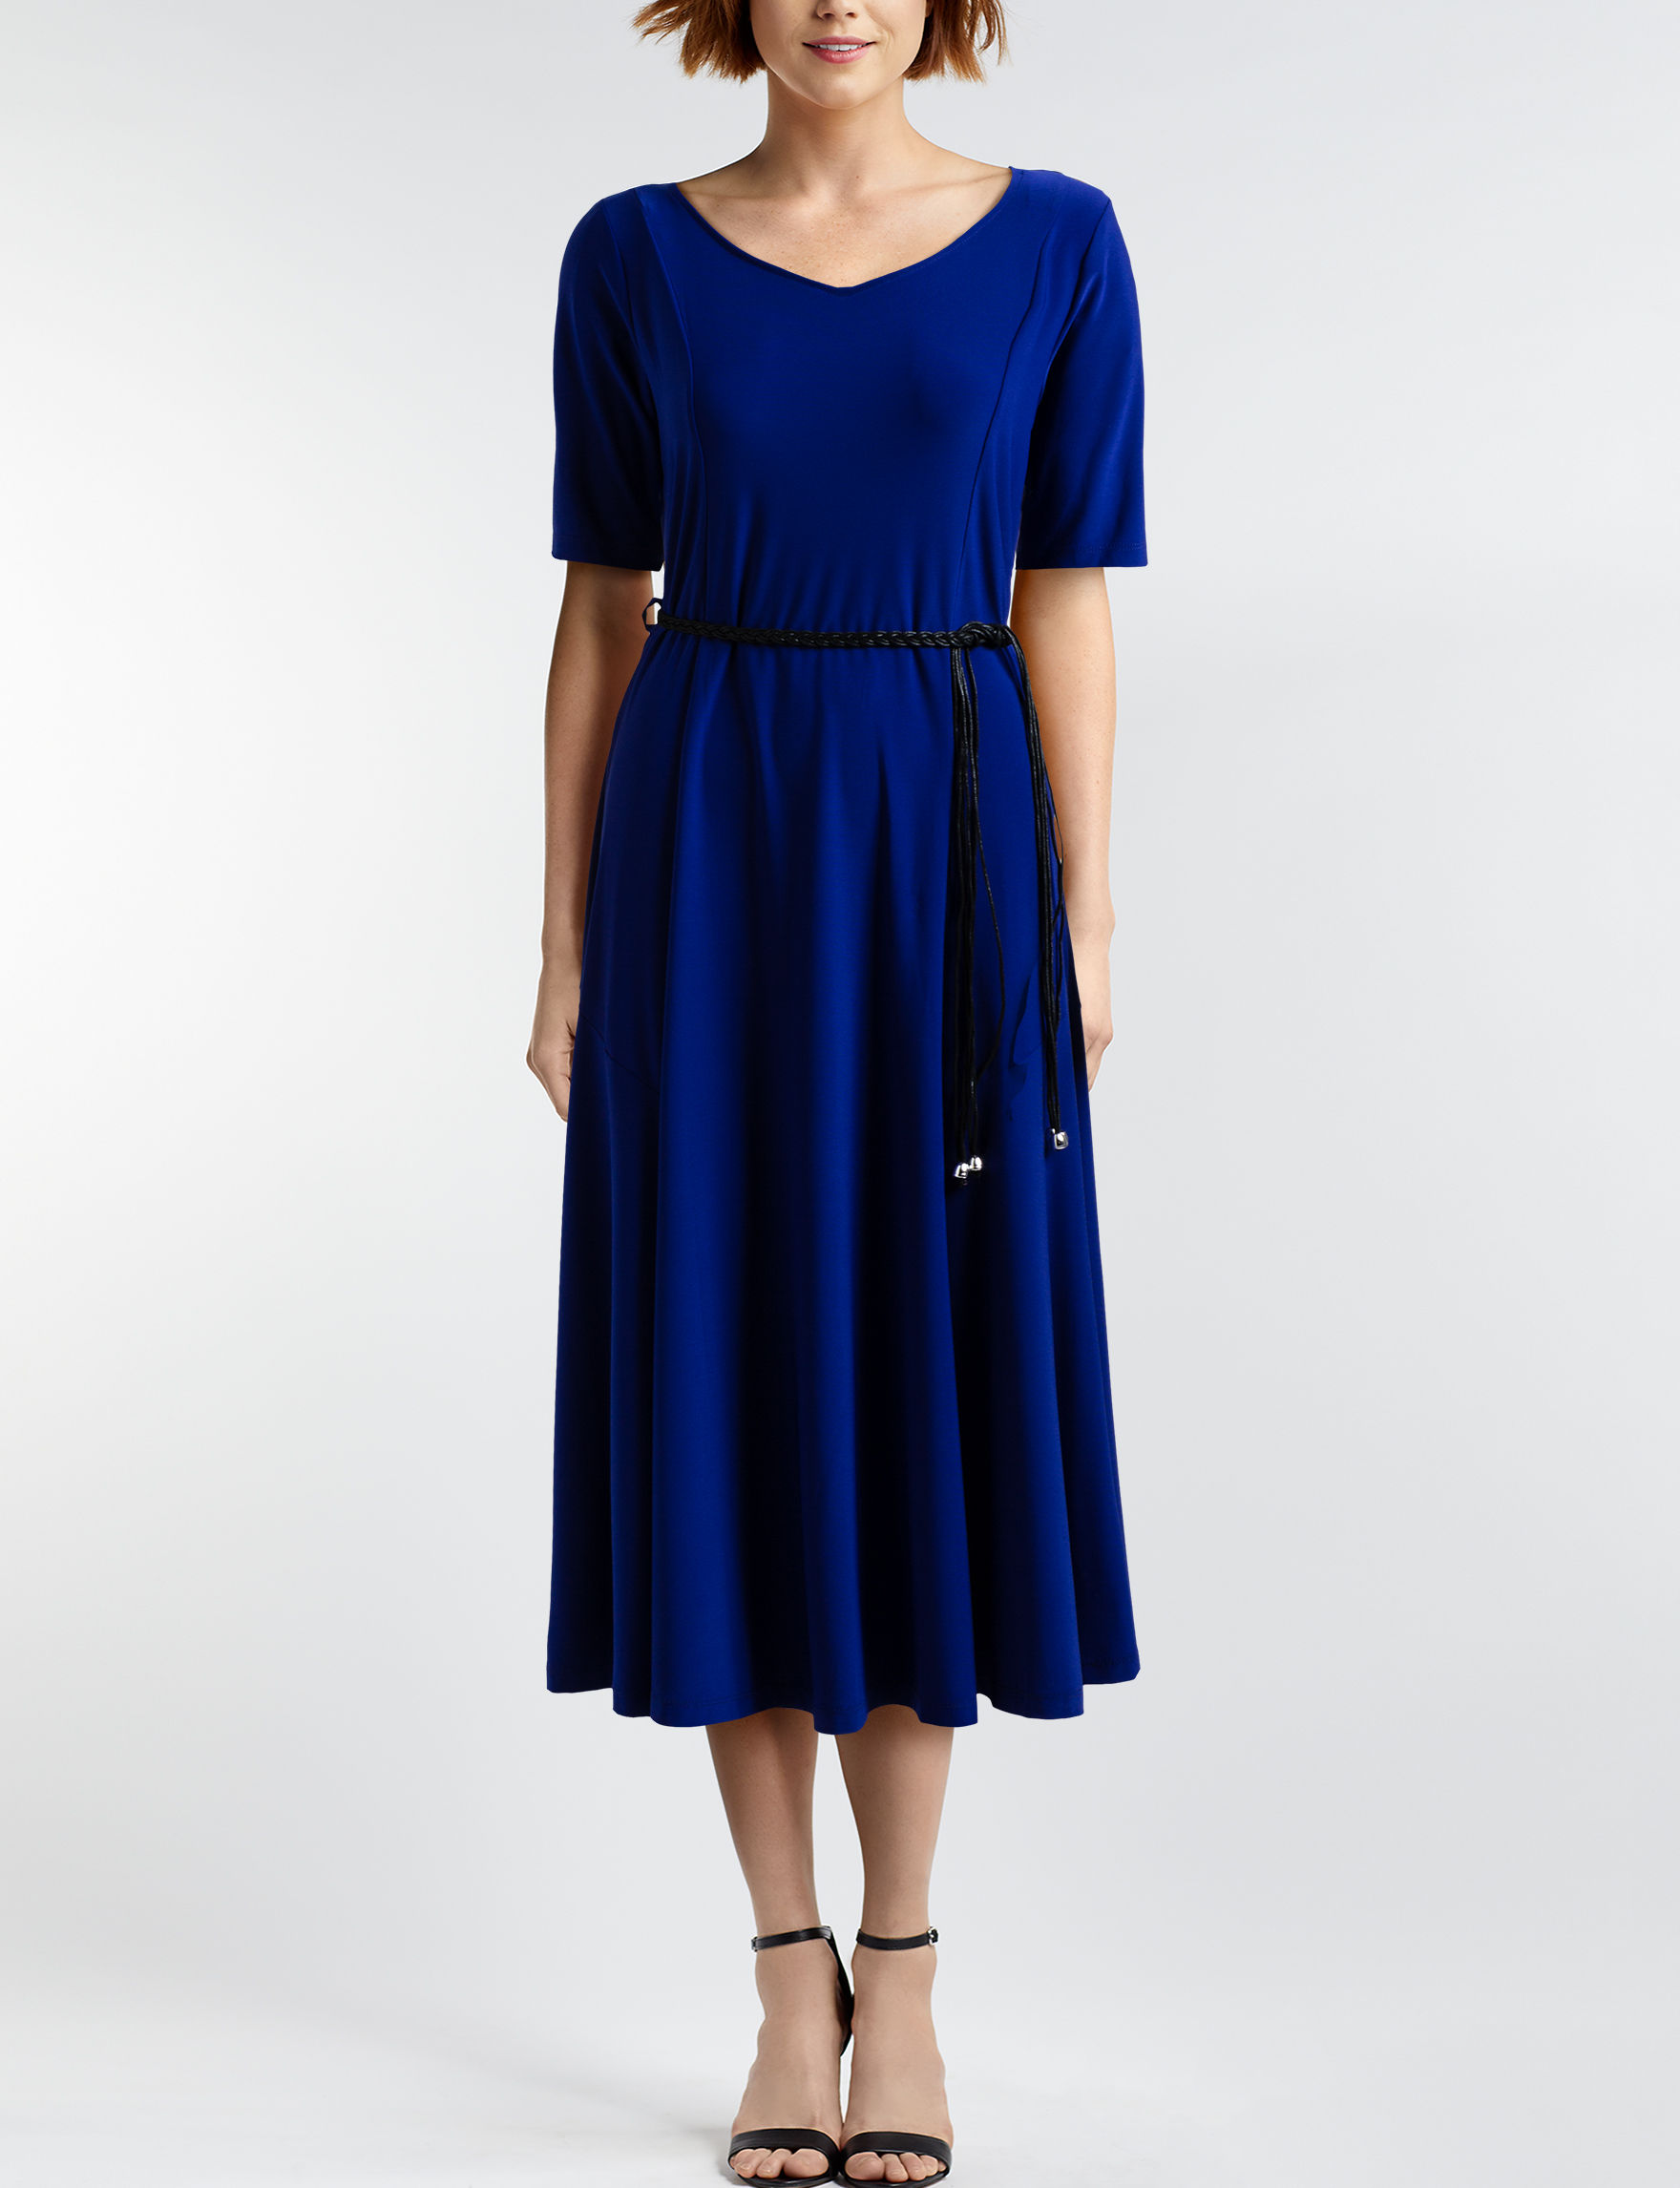 Nina Leonard Blue Everyday & Casual A-line Dresses